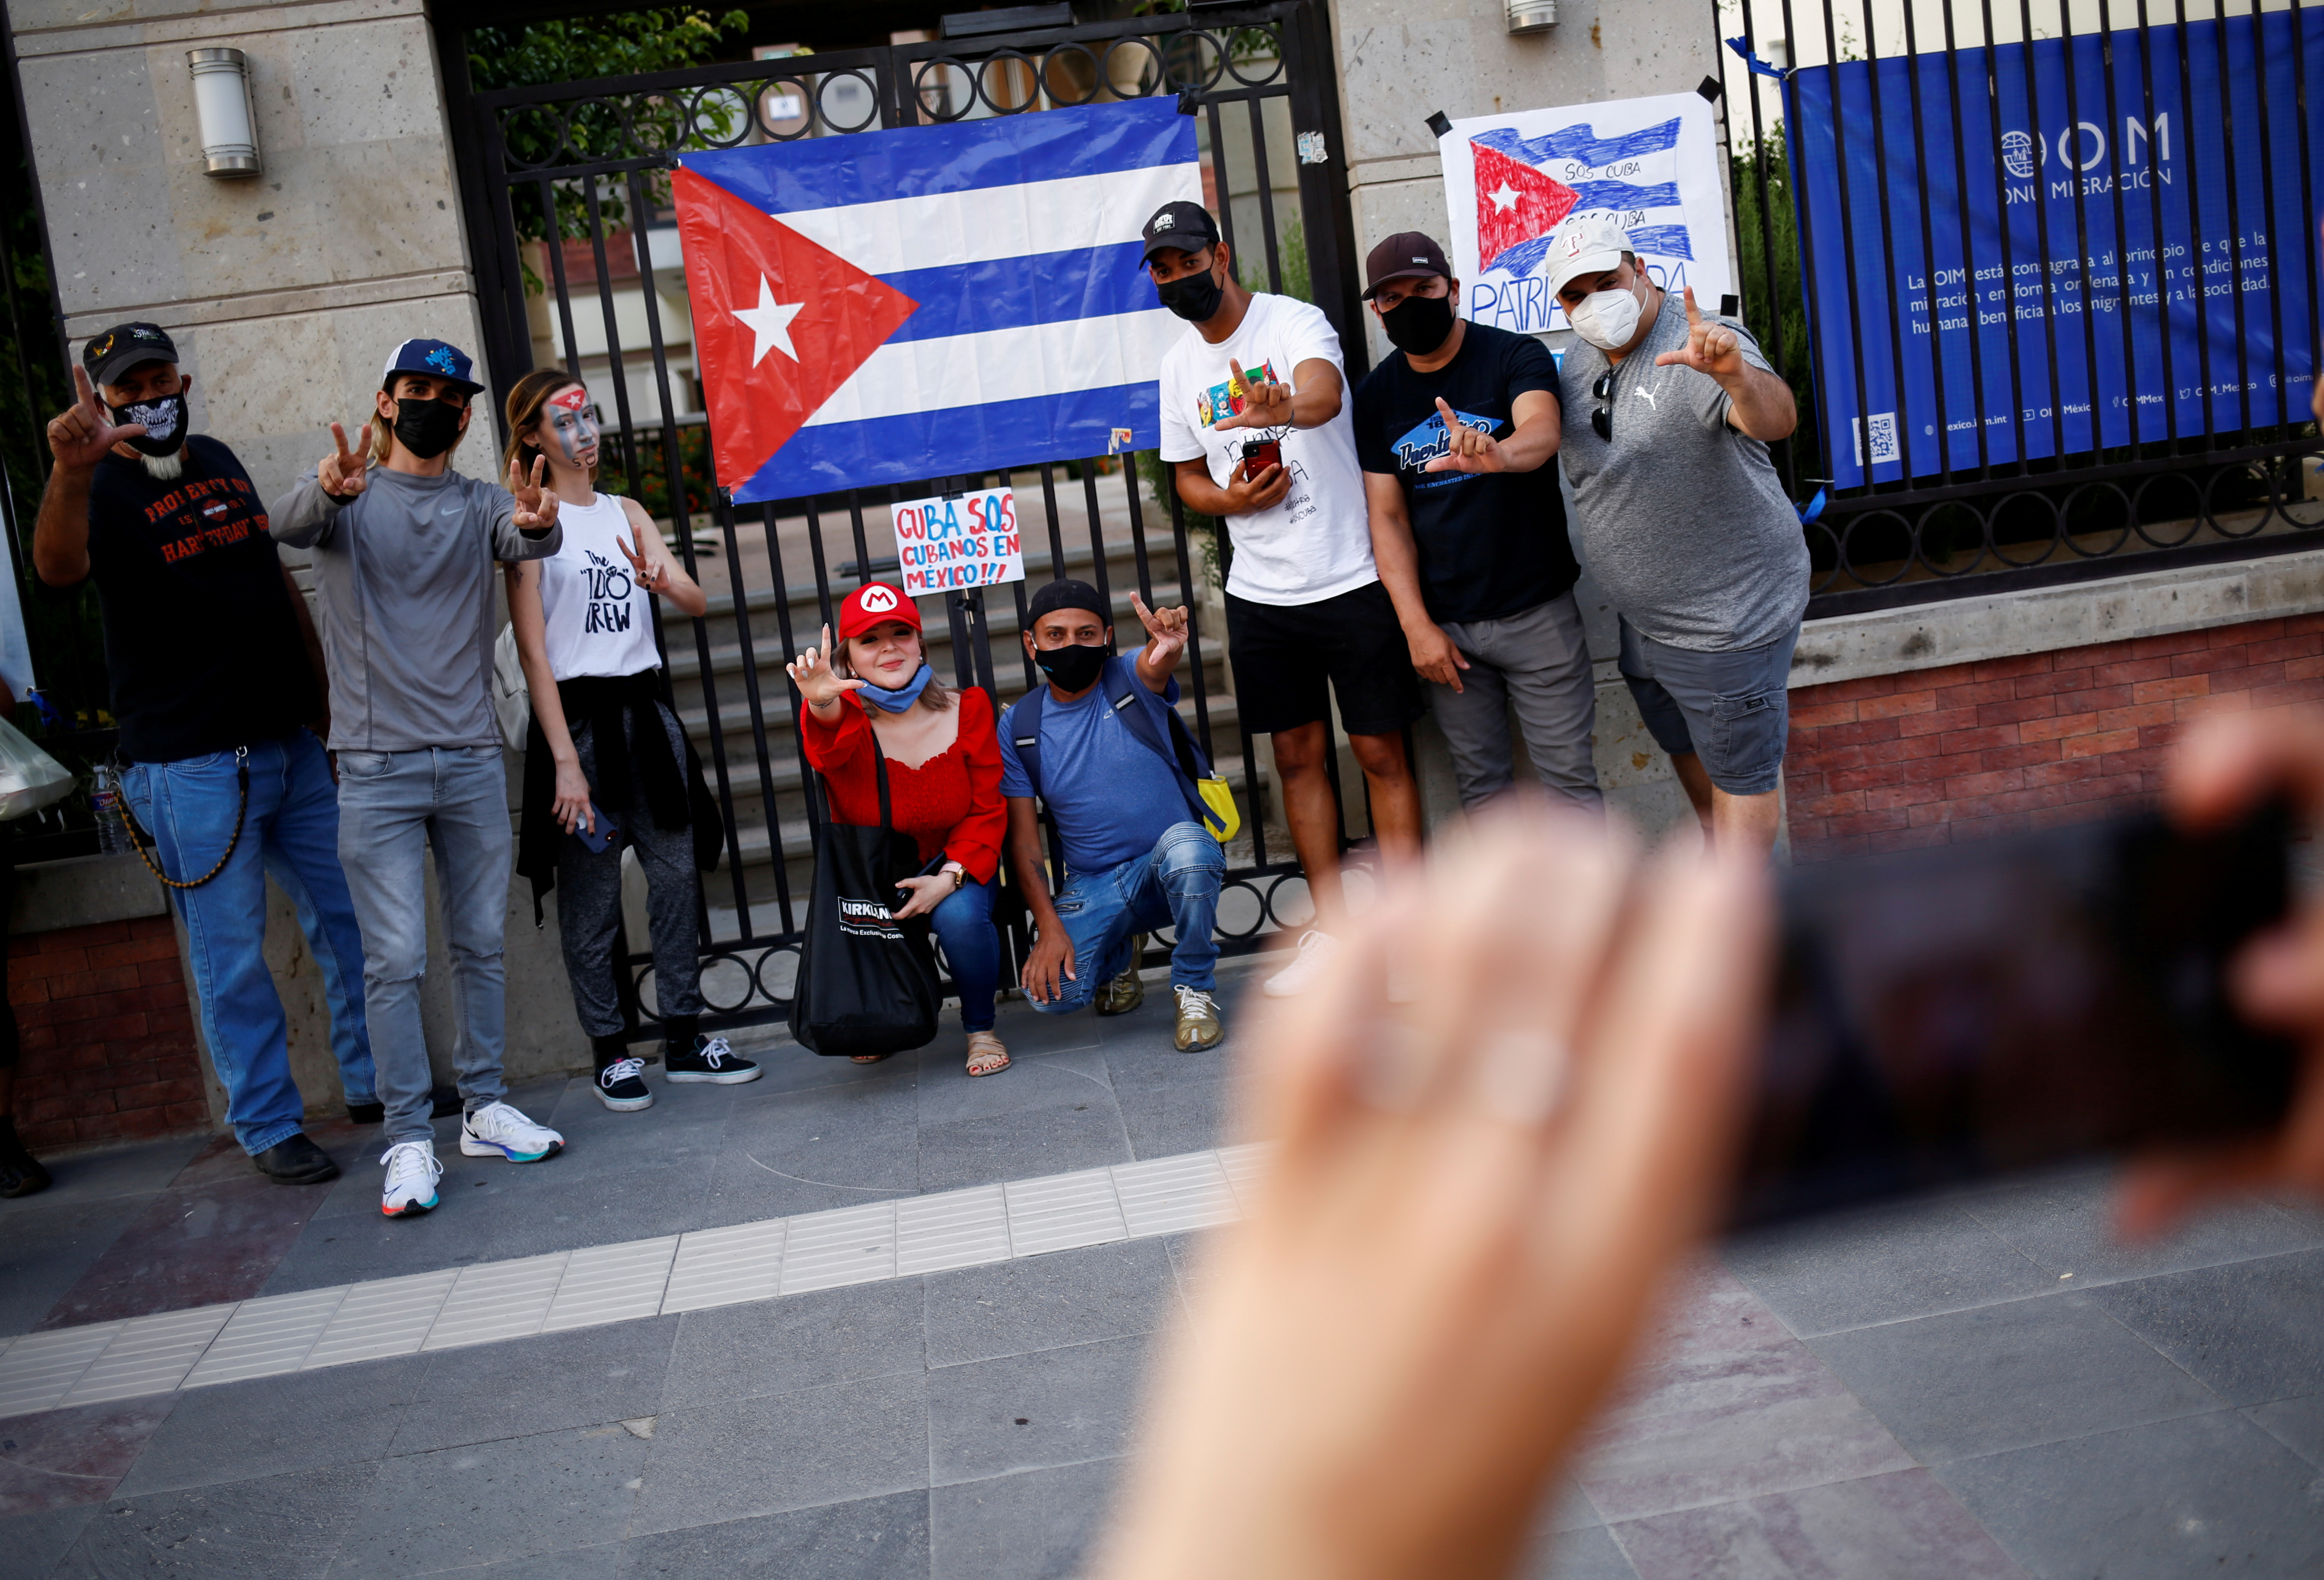 Cubans gesture during a protest against the Cuban government in front of the offices of the International Organization for Migration (IOM) in Ciudad Juarez, Mexico July 12, 2021. REUTERS/Jose Luis Gonzalez/File Photo